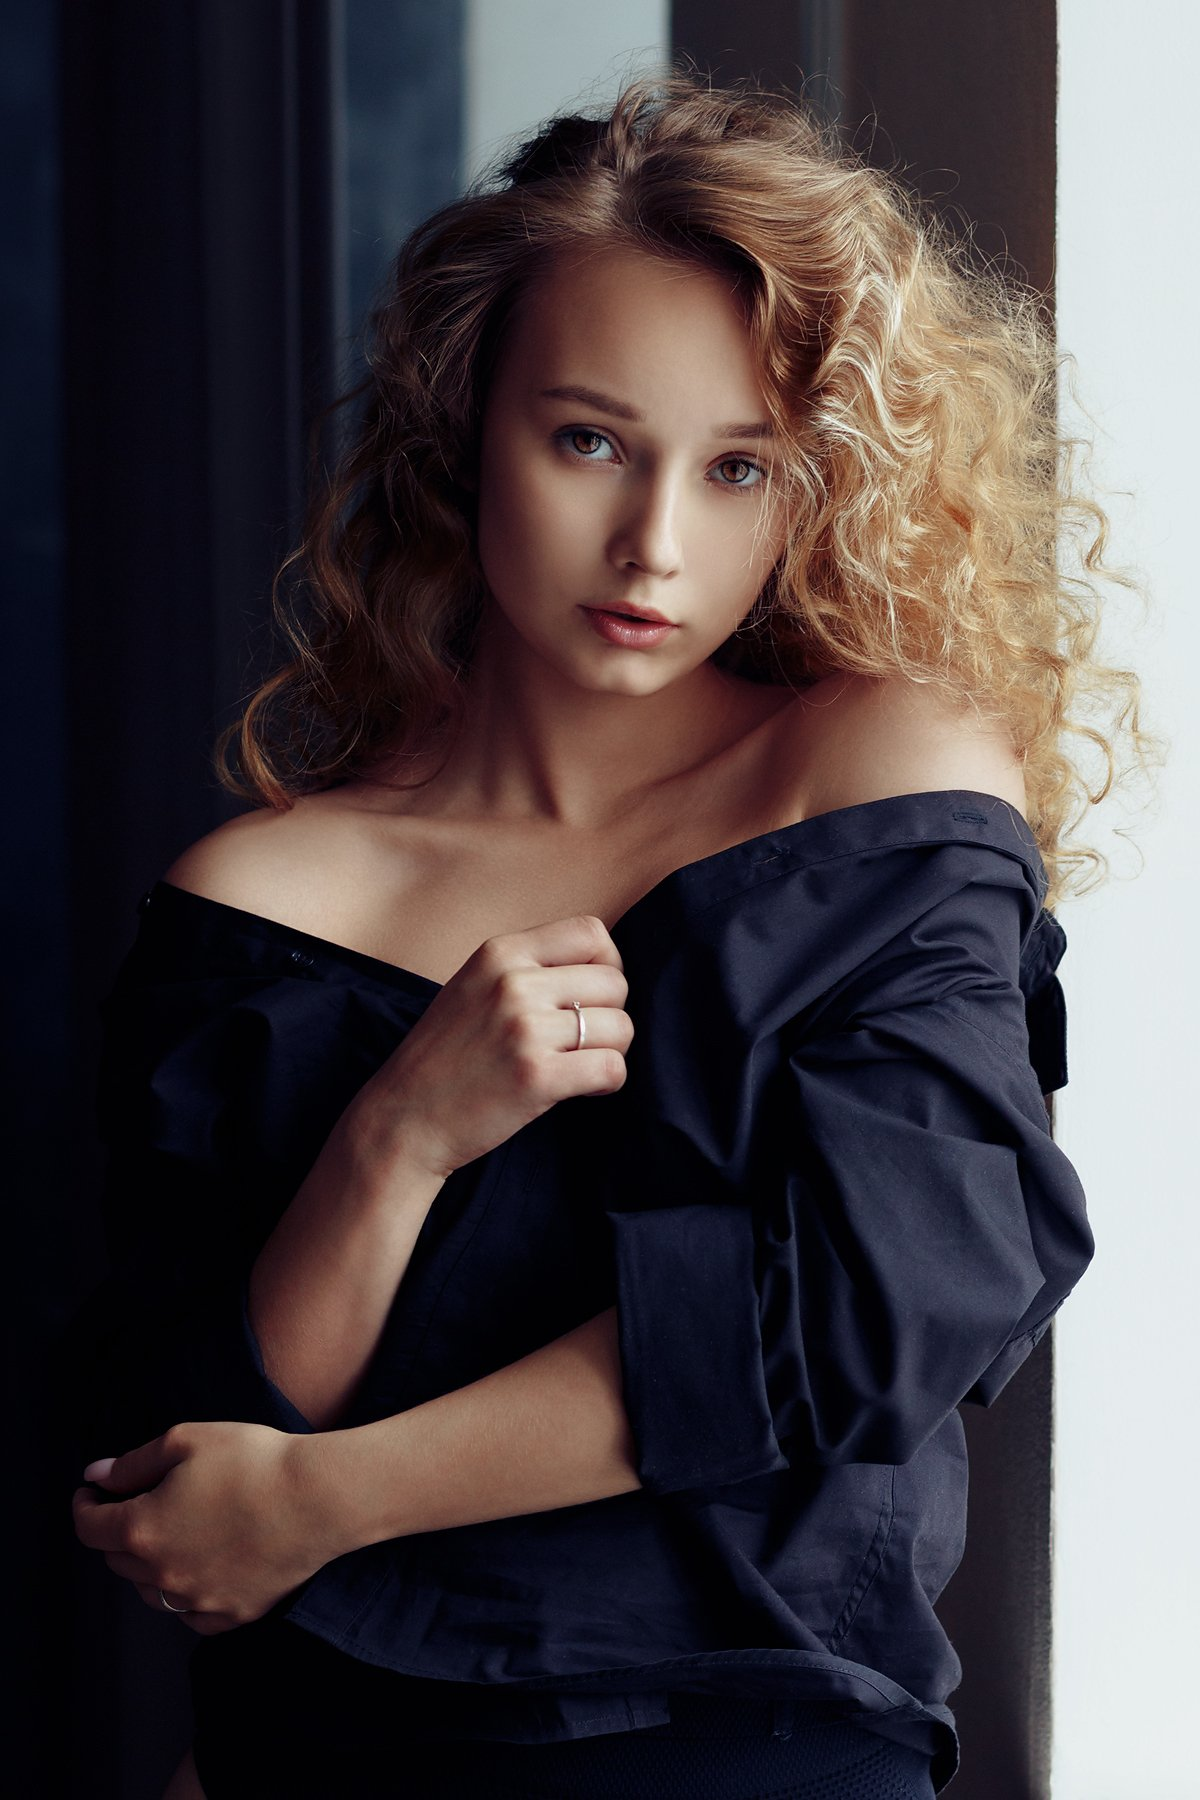 girl, sexy, beauty, beautiful, cute, pretty, young, fashion, glamour, model, photoshoot, studio, miass, portrait, indoor, indoors, people, миасс, body, hot, sensual, Евгений